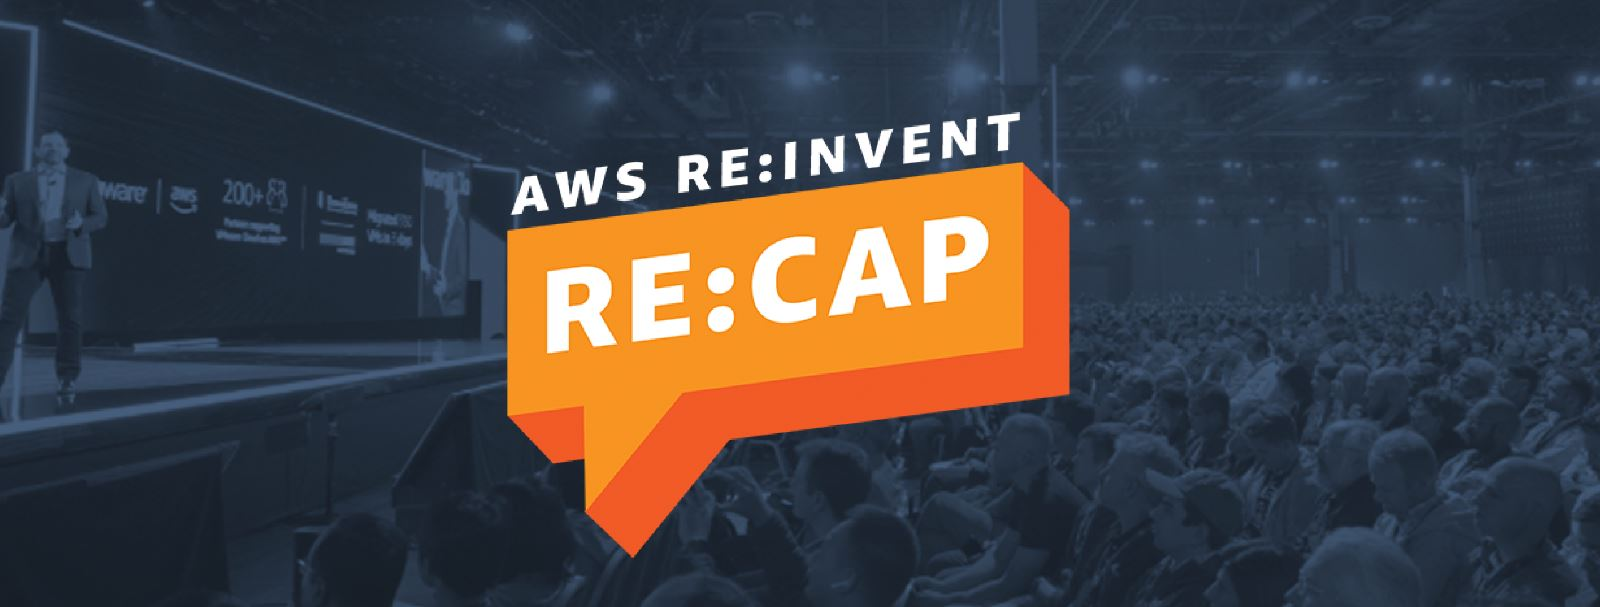 AWS re:Invent re:Cap